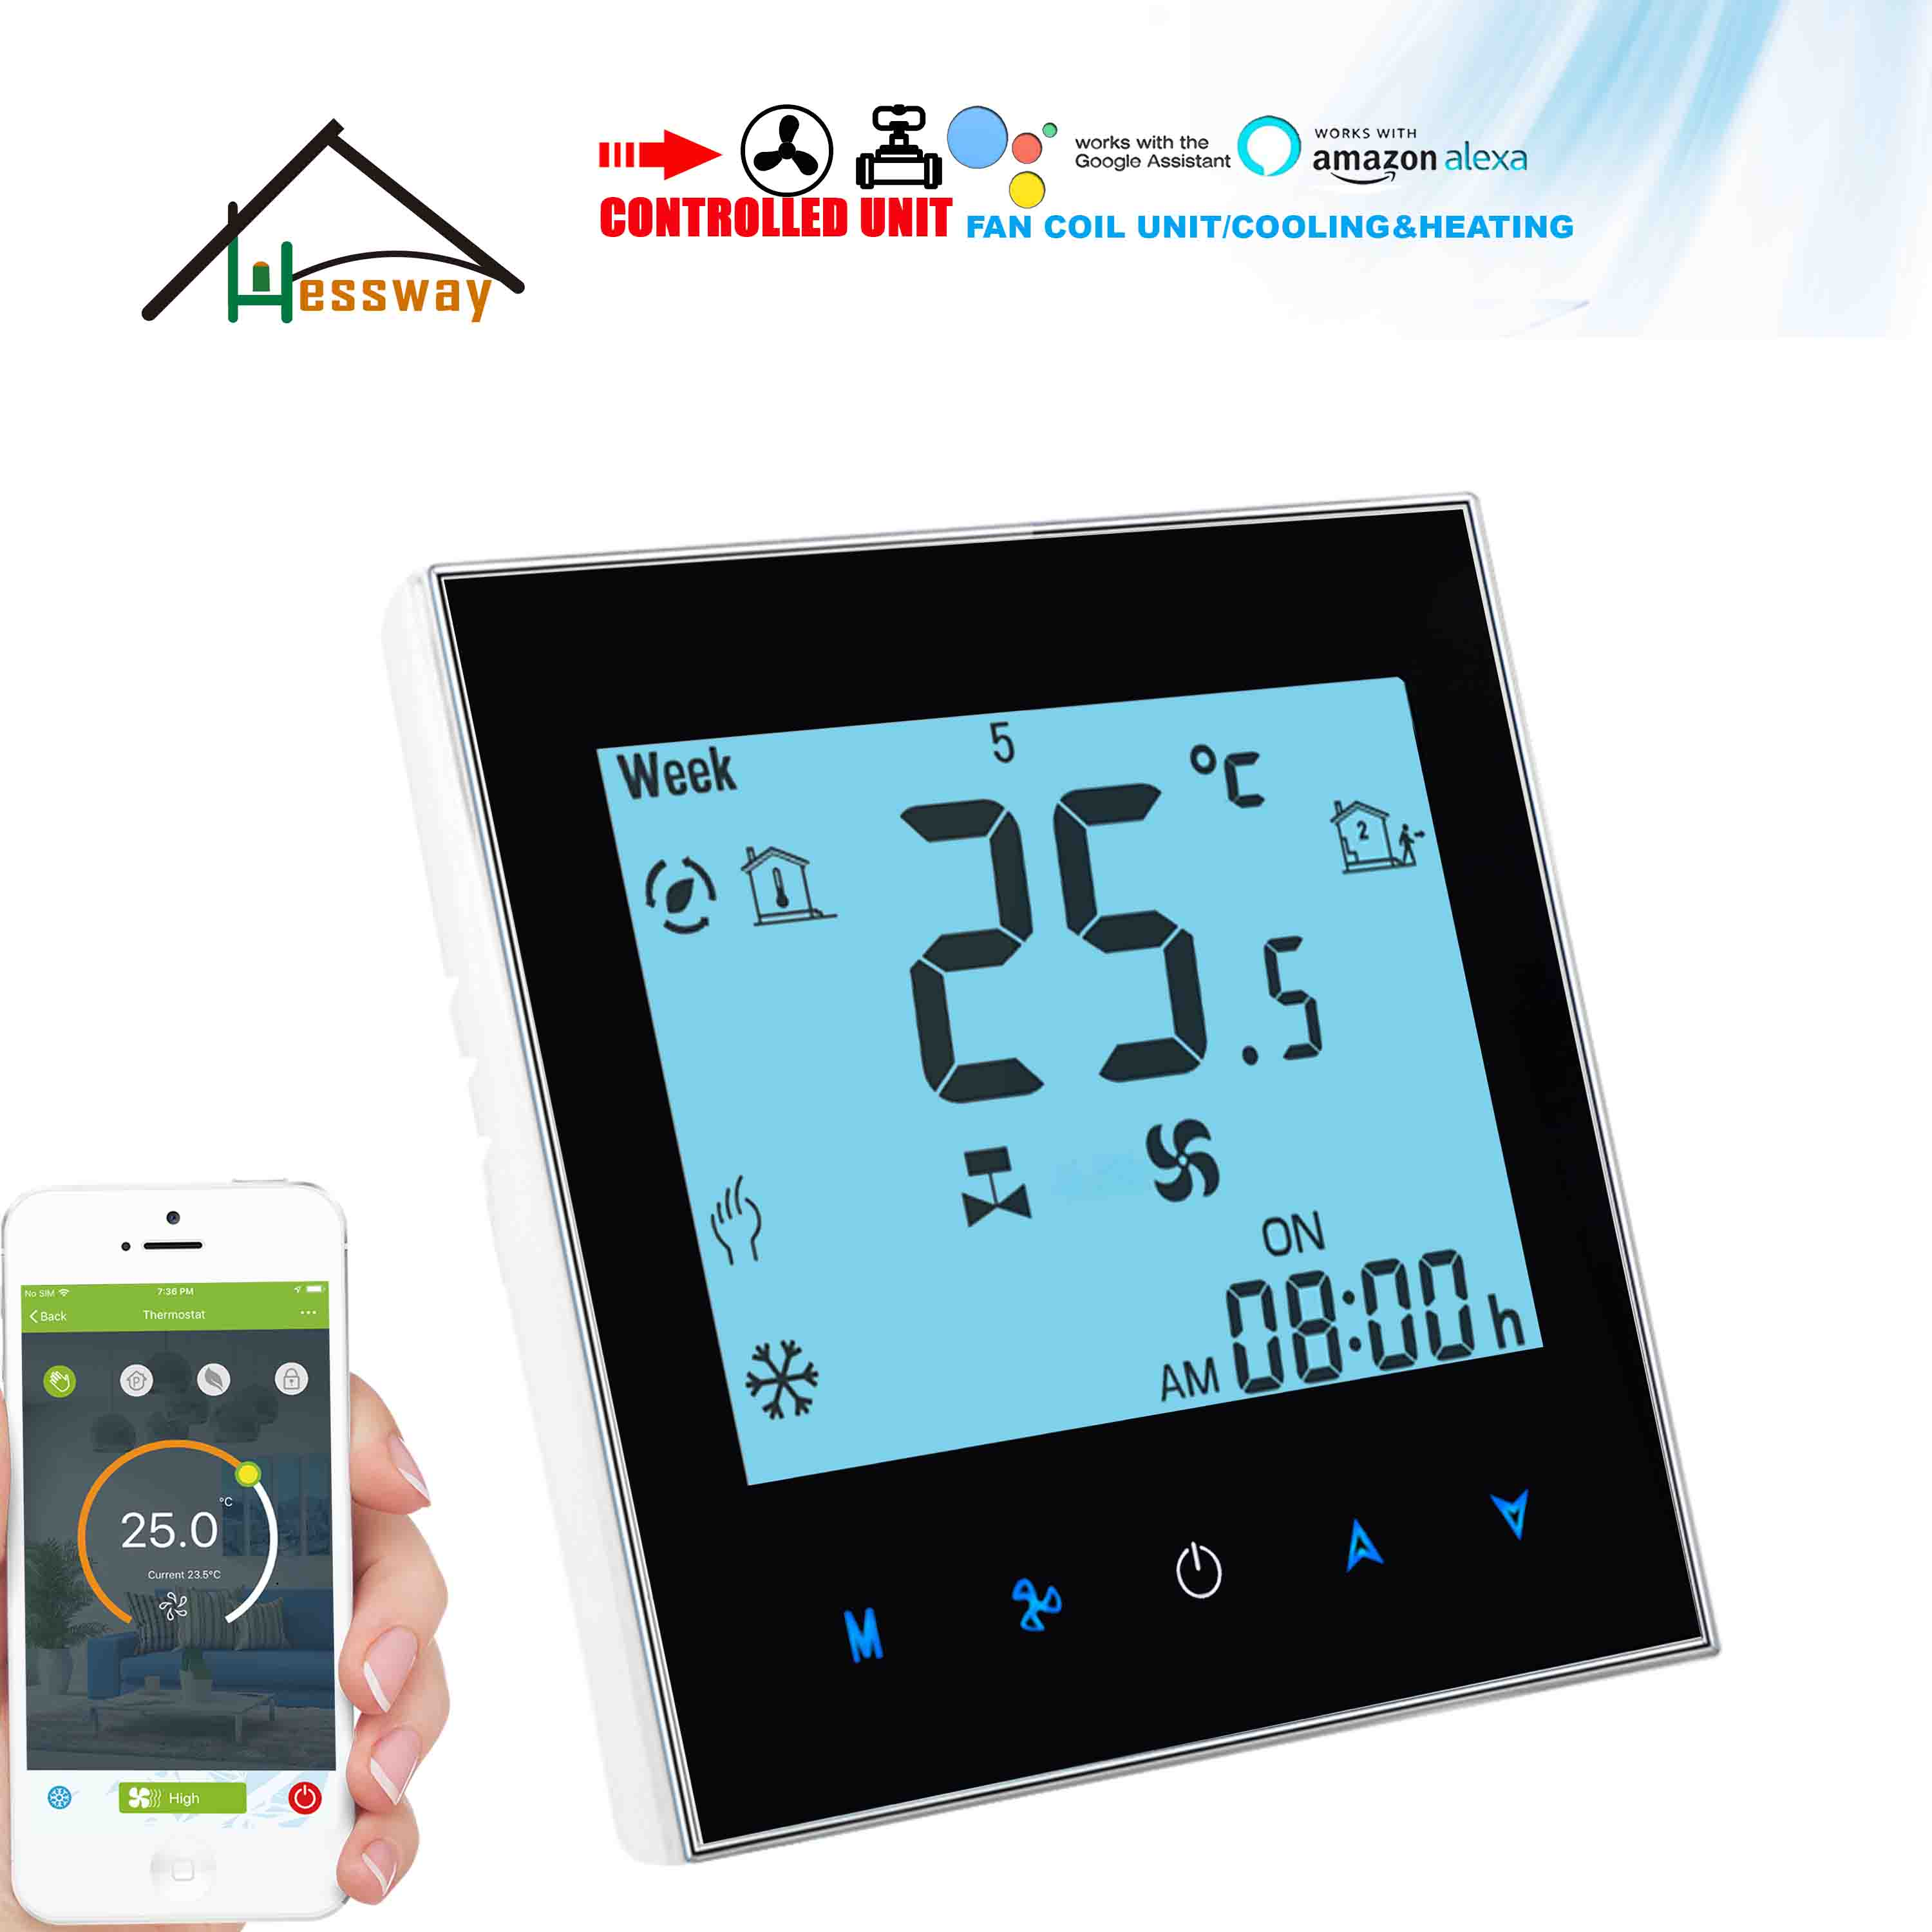 HESSWAY Heat Cool Temp Rs485 Modbus 0-10V WIFI THERMOSTAT For Programable Thermostatic Valve&fan